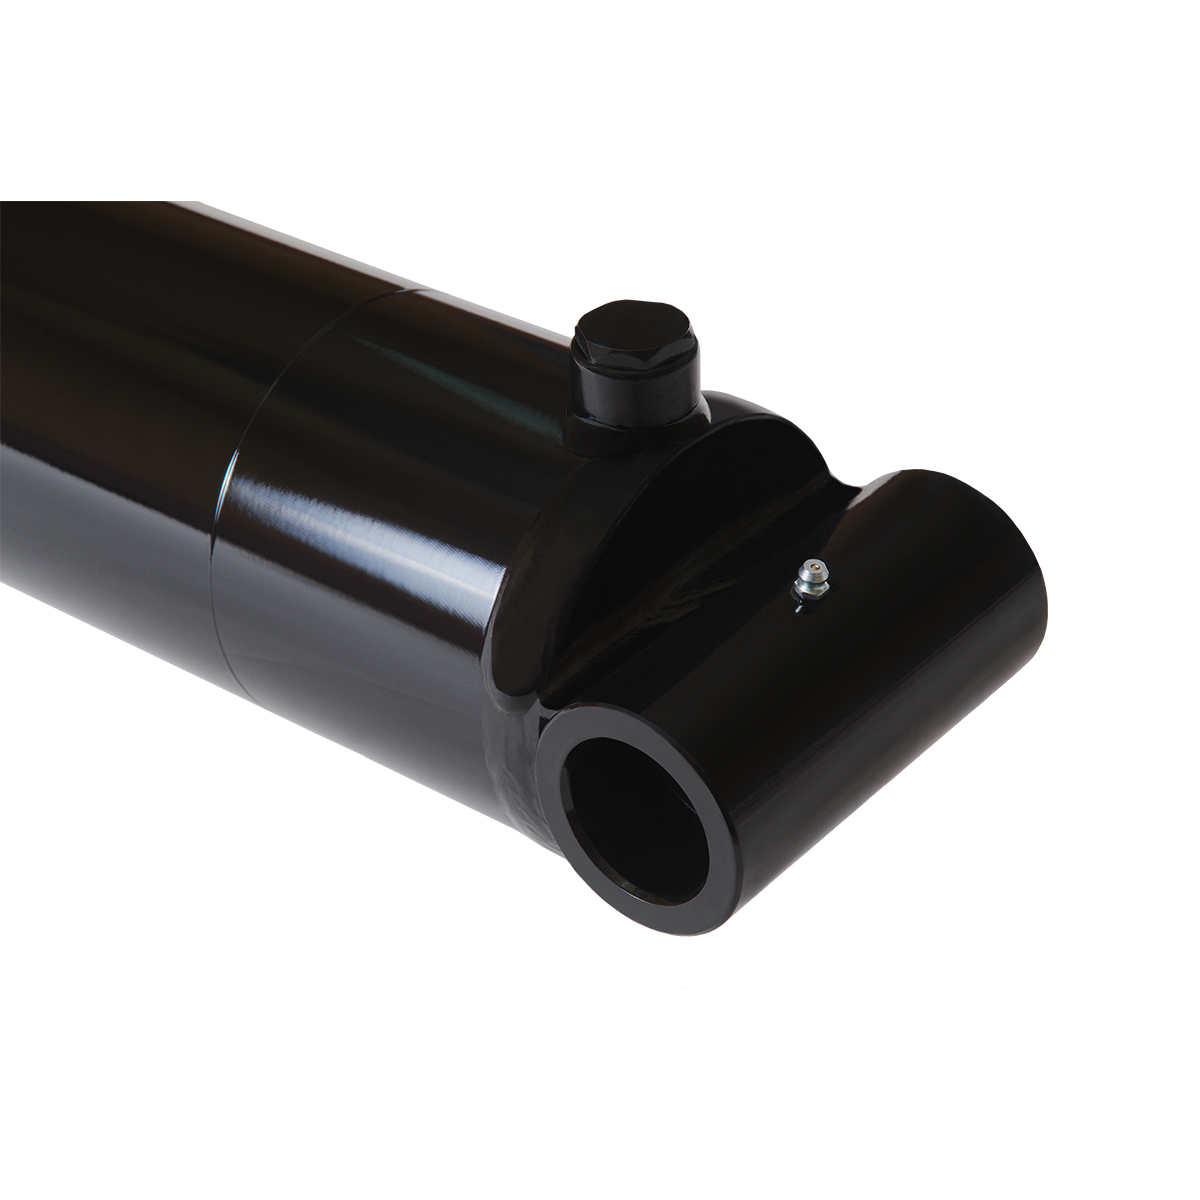 4 bore x 8 stroke hydraulic cylinder, welded cross tube double acting cylinder | Magister Hydraulics